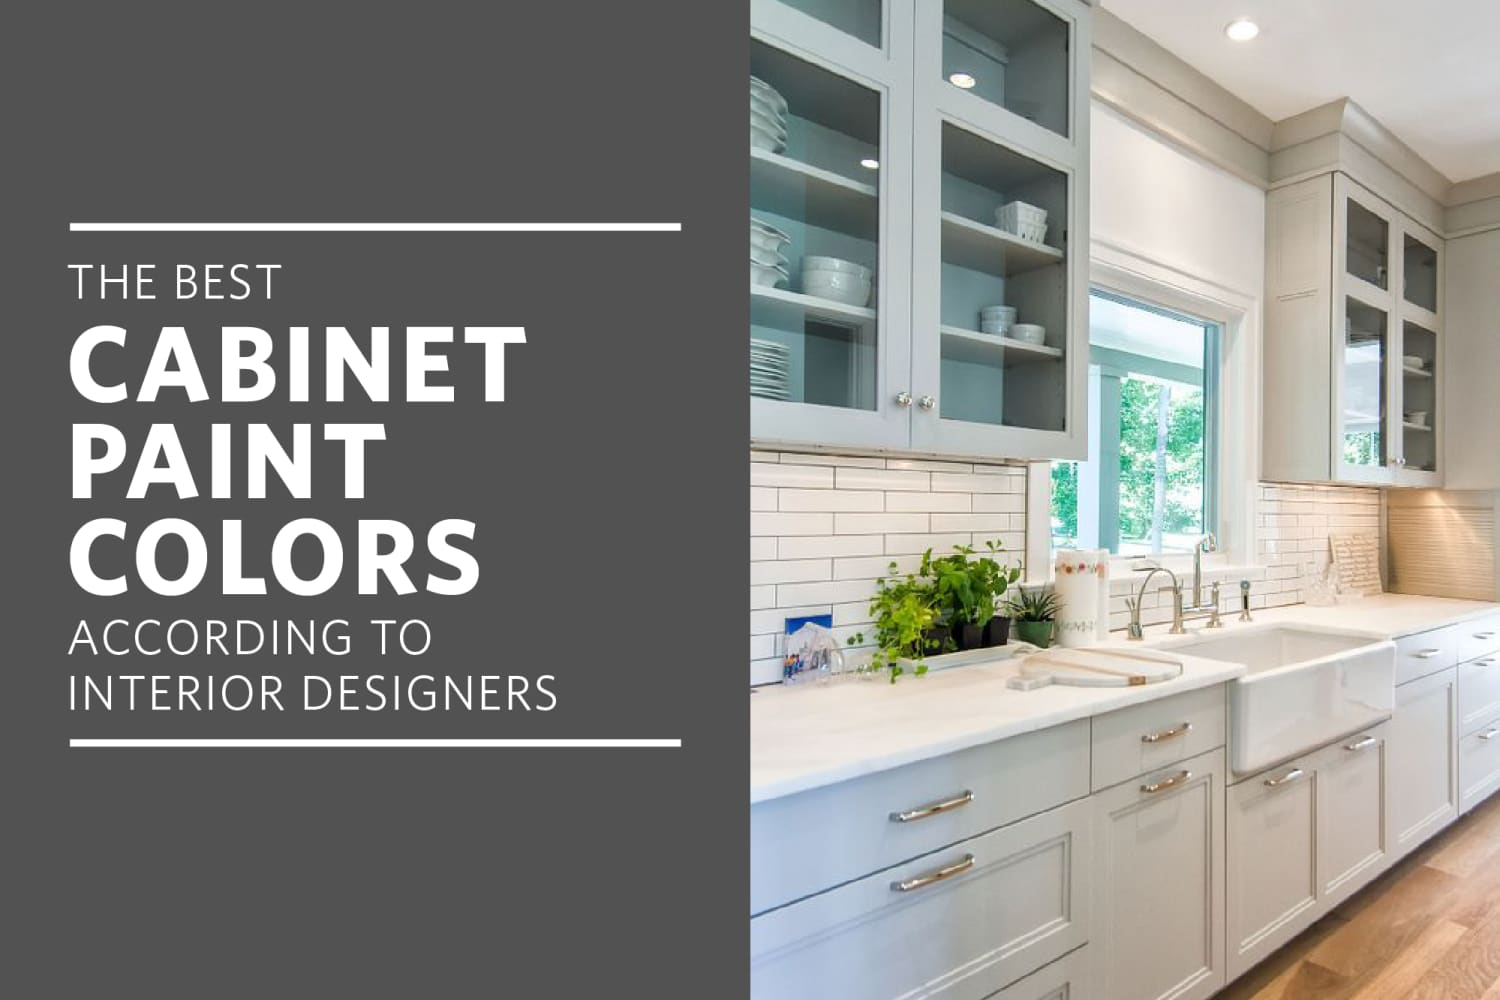 The Best Cabinet Paint Colors for a Happier Kitchen, According to Interior Designers